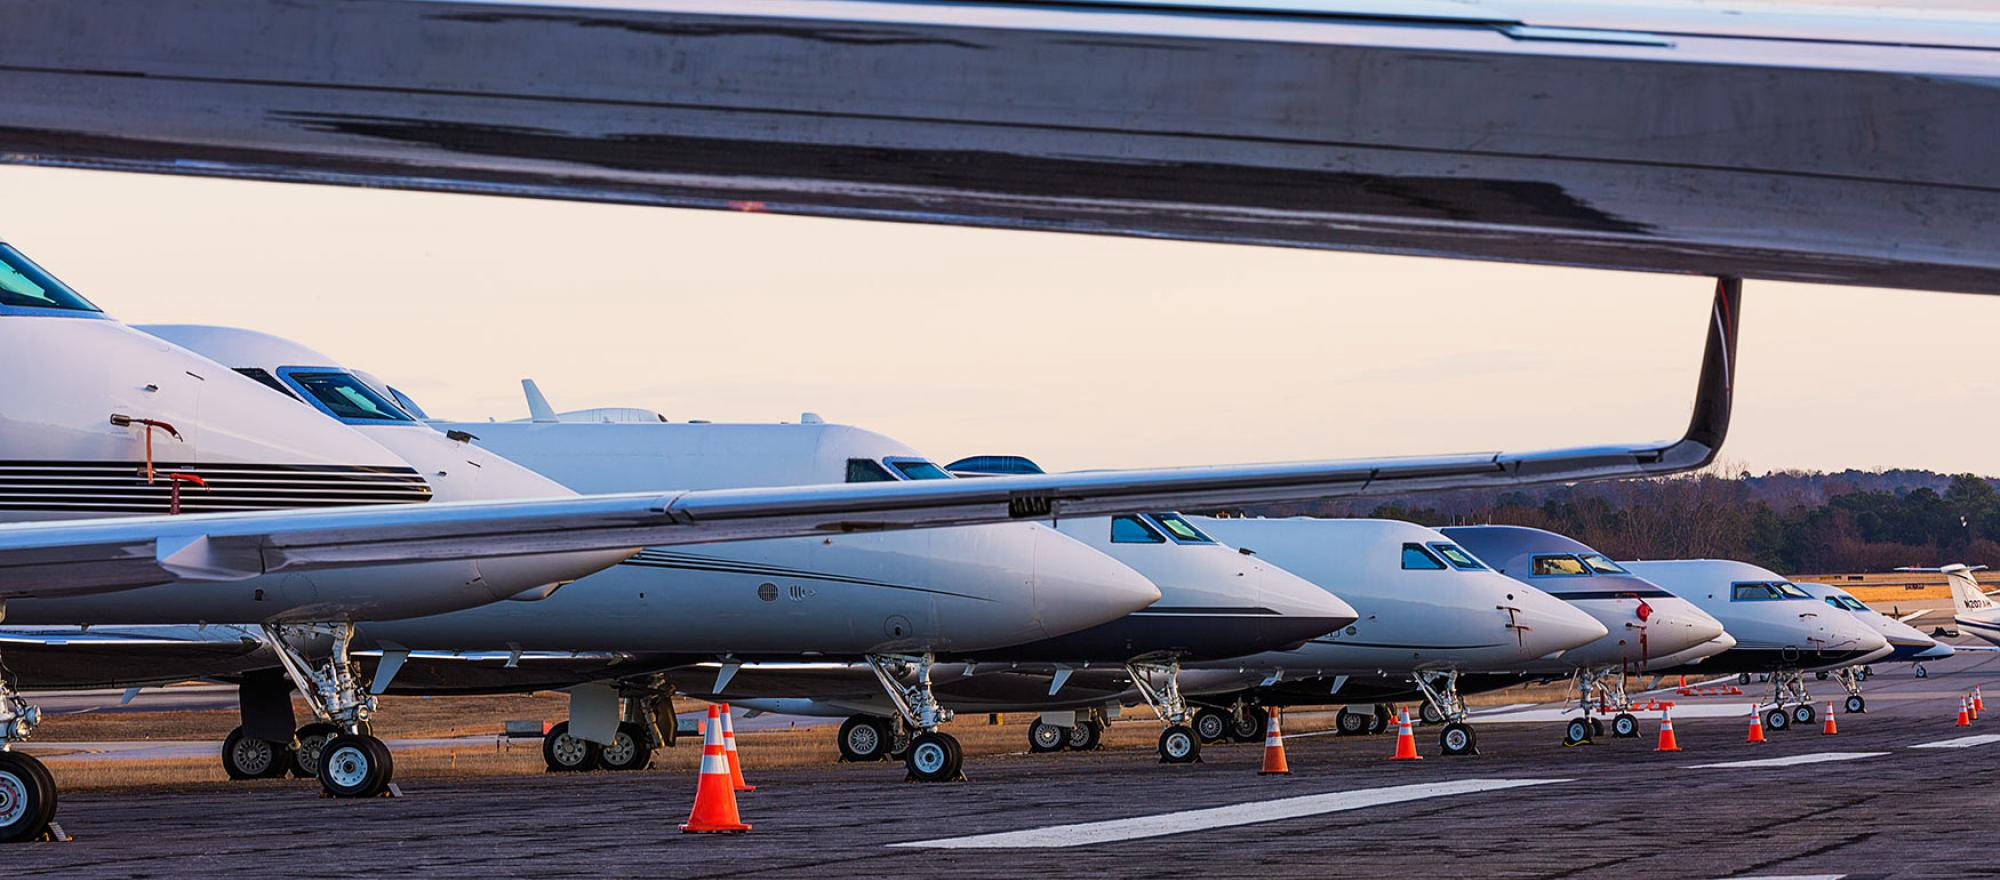 Business jets on the ramp.